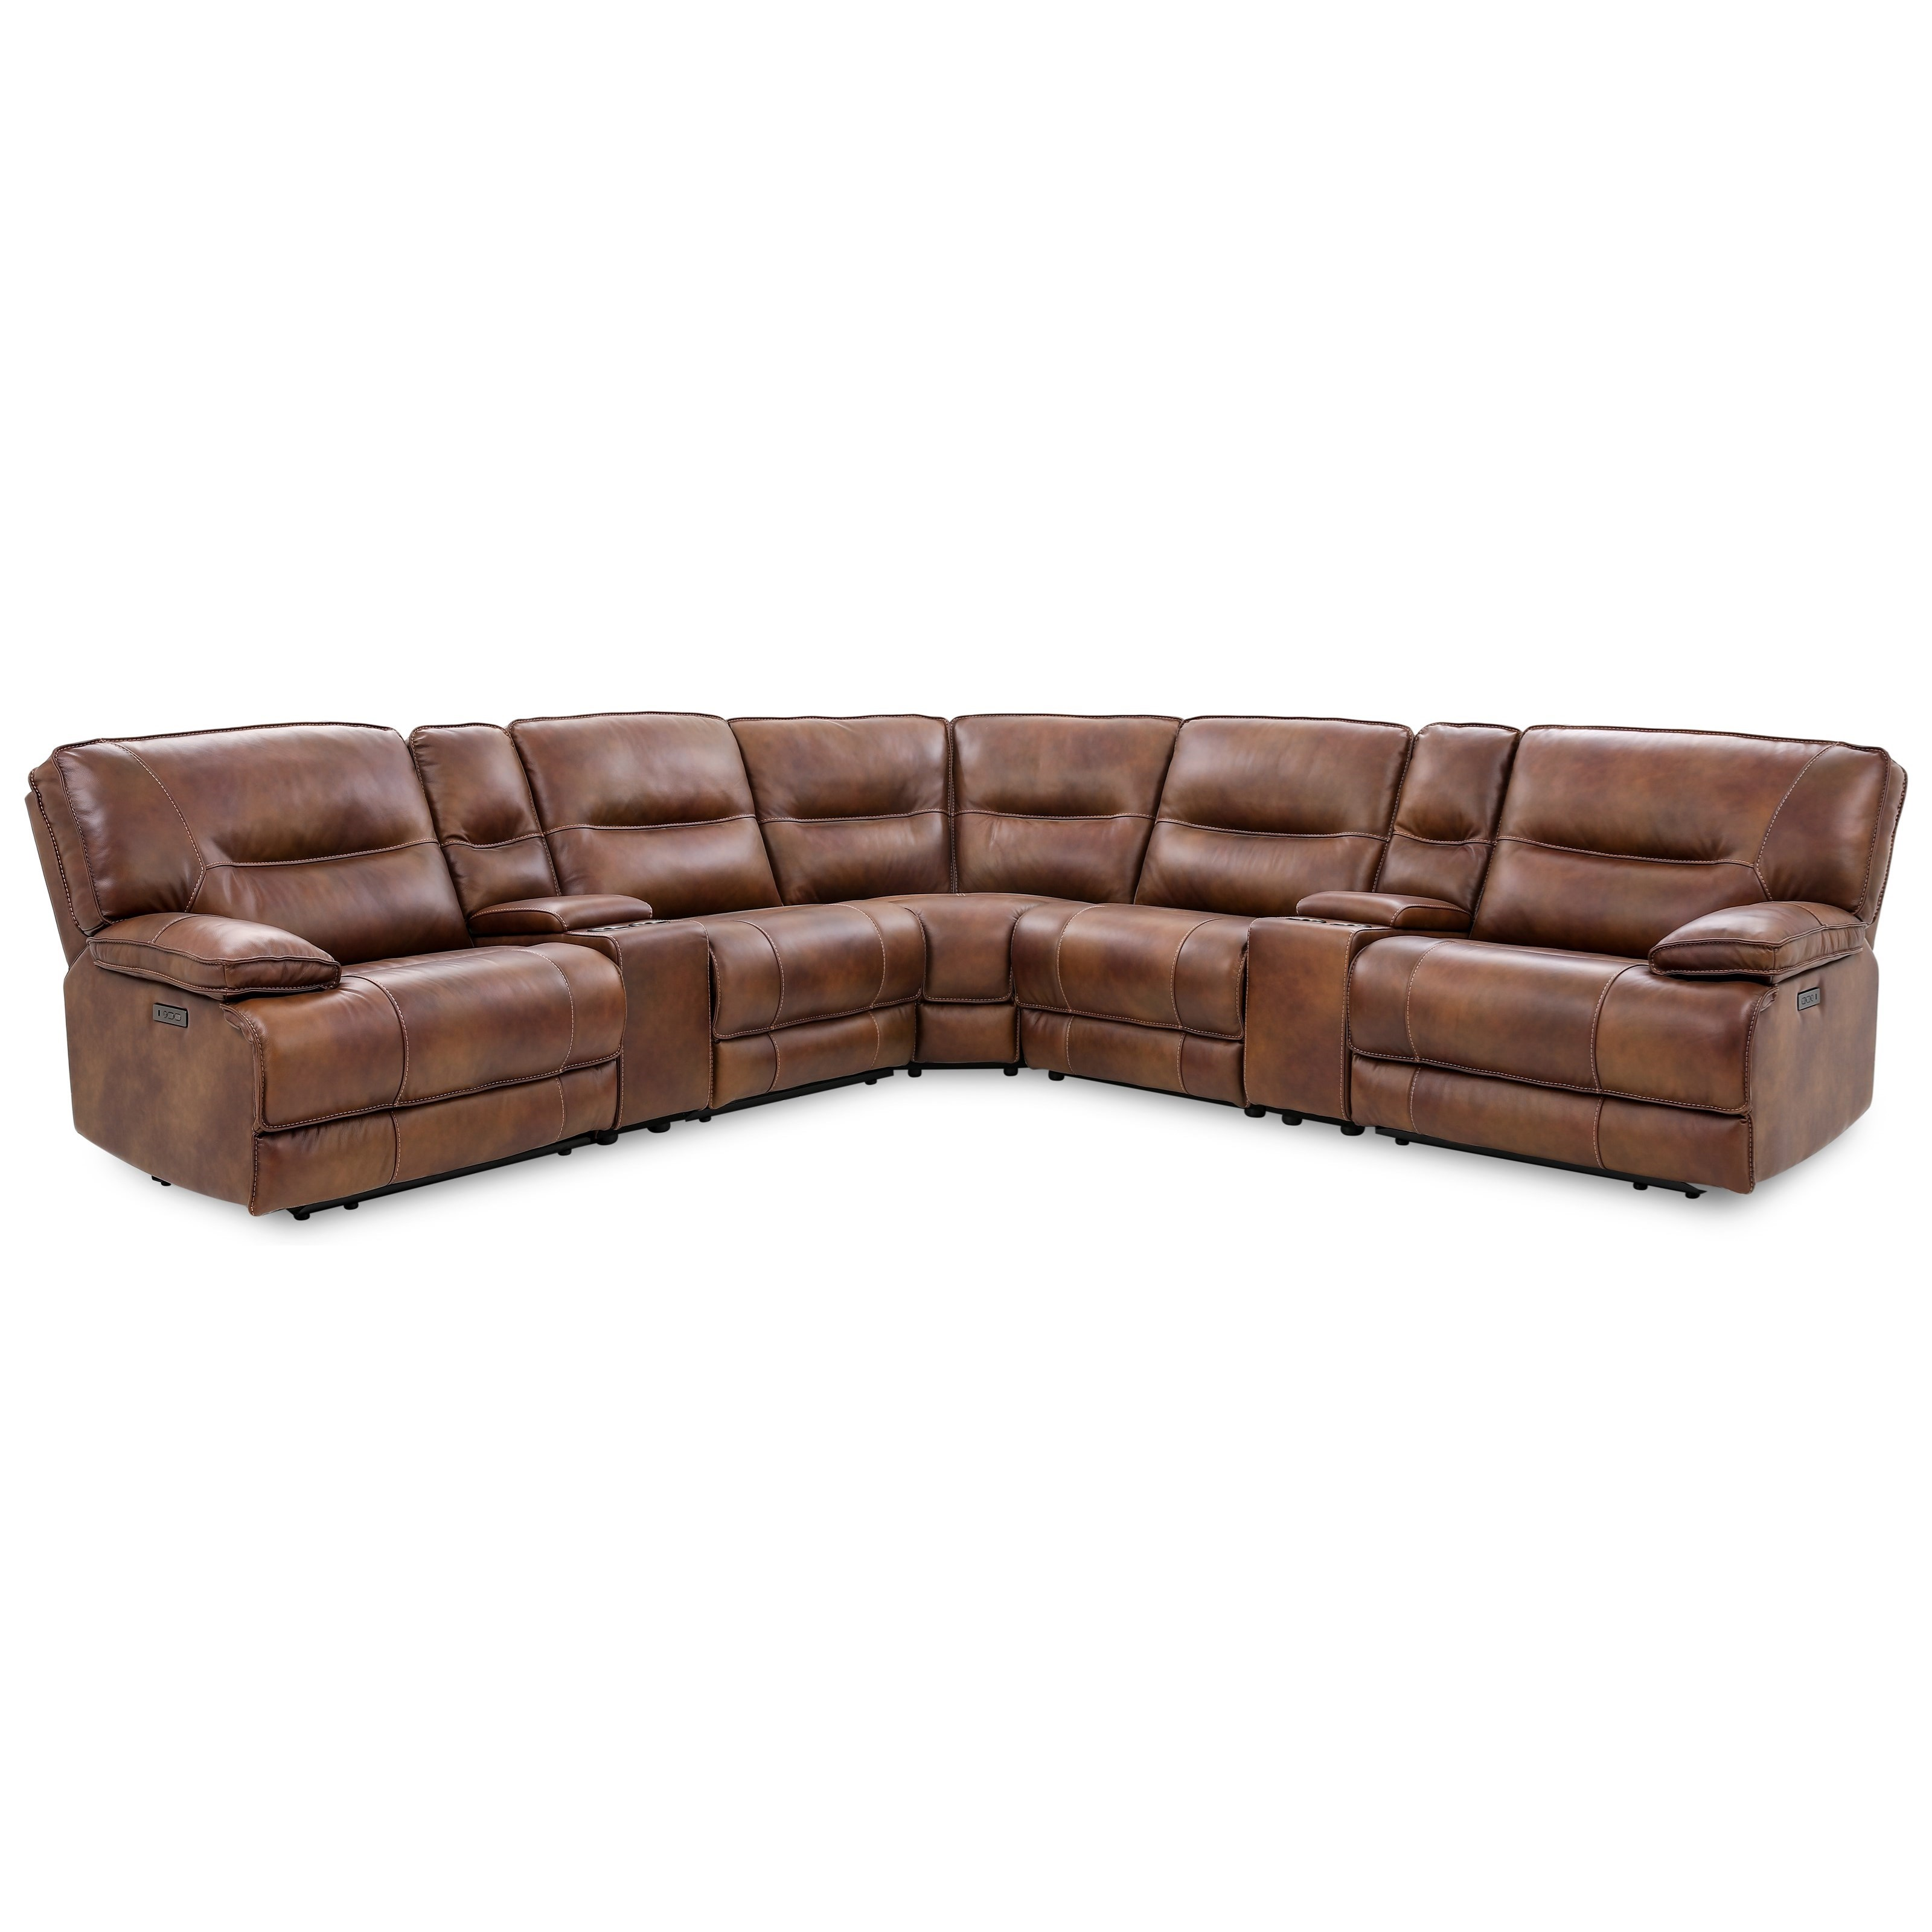 70048 6-Piece Power Reclining Sectional by Cheers at Lagniappe Home Store